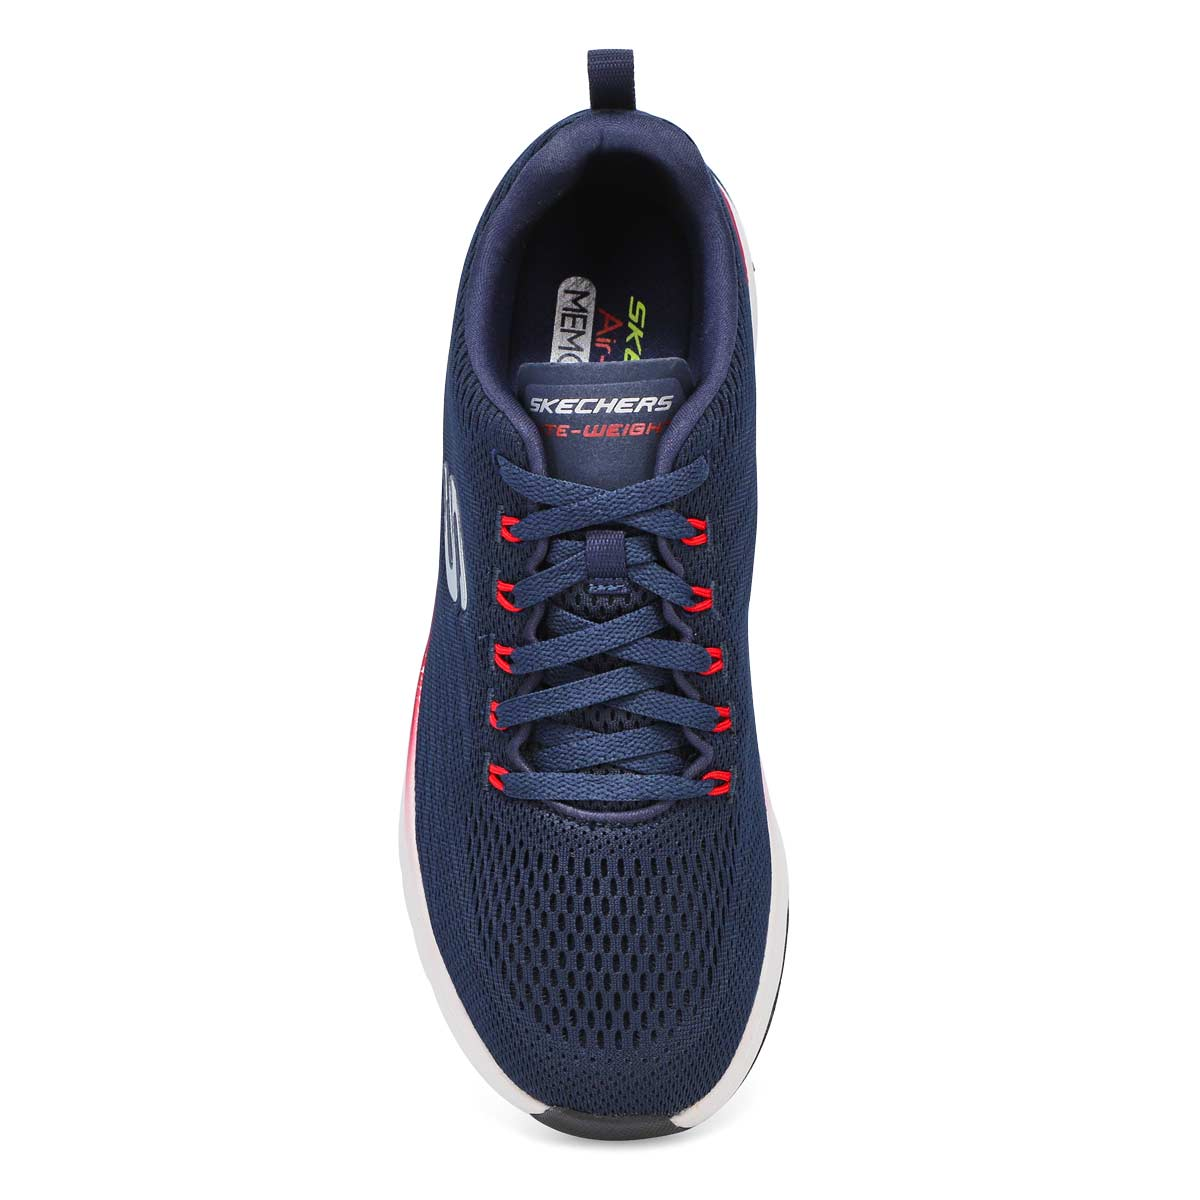 Men's Ultra Groove Templar Sneaker - Navy/Red